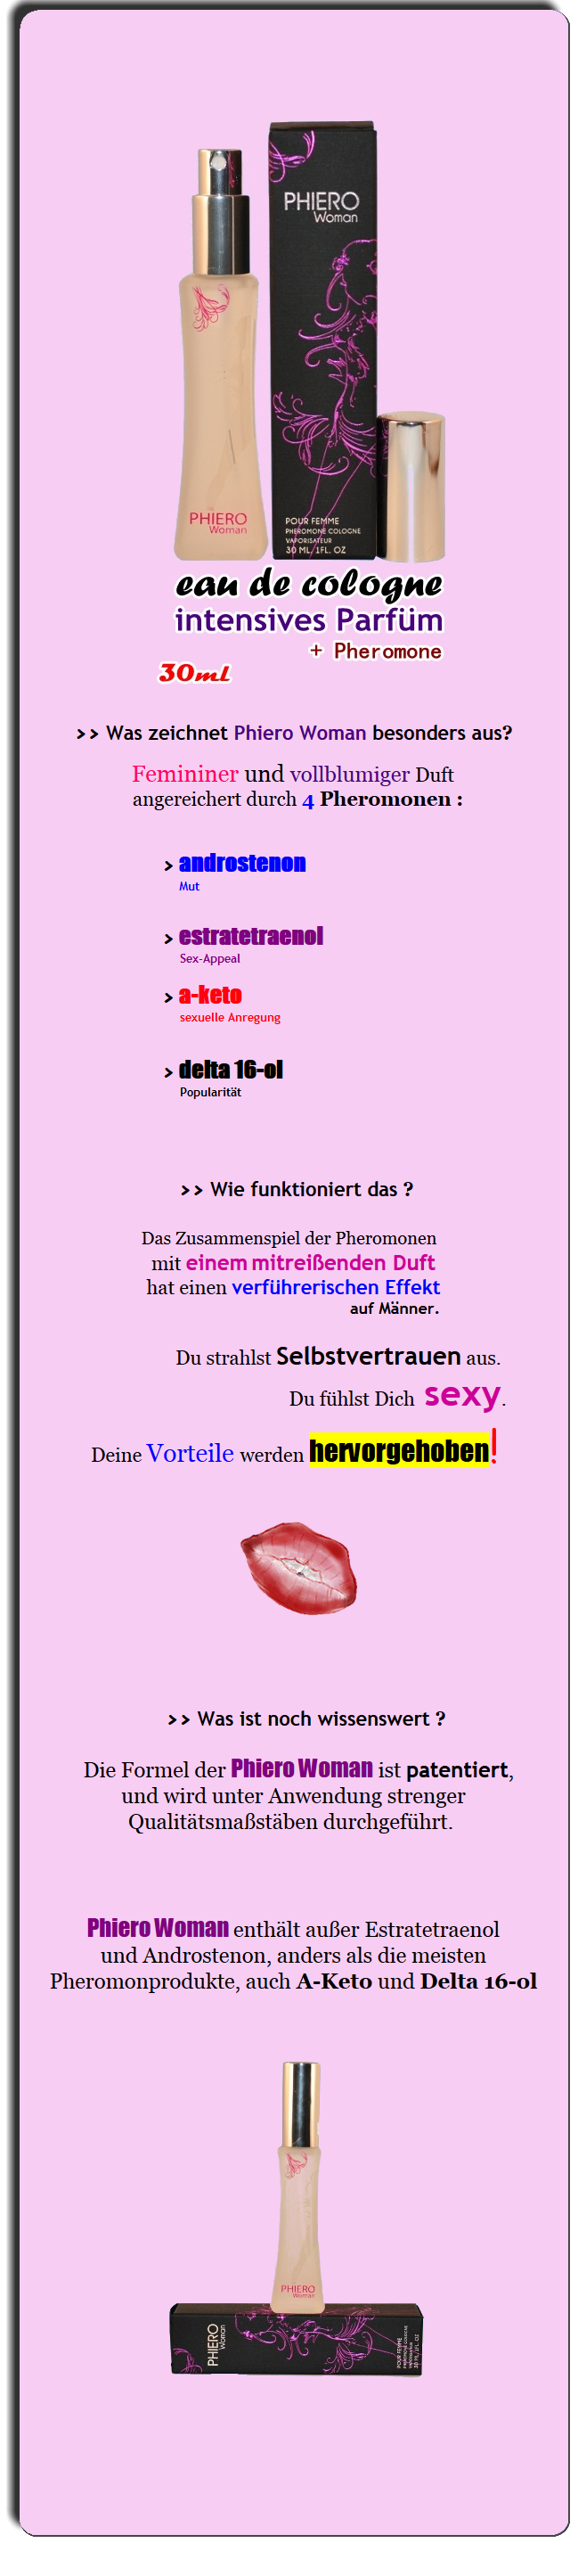 http://roogu.com/auction/de/phierod.png